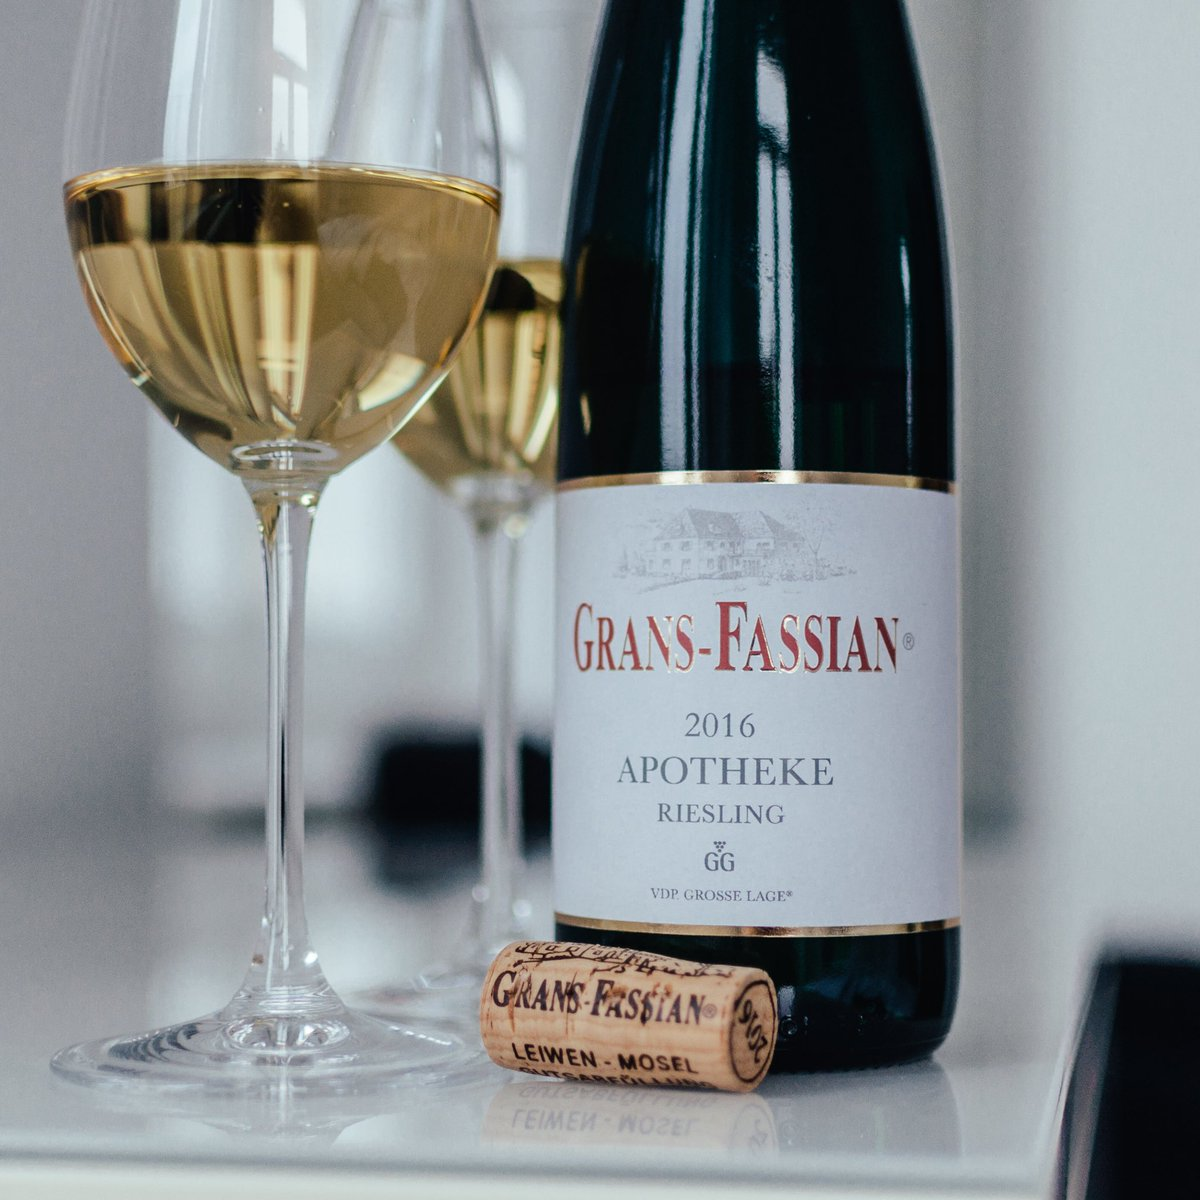 A great winery - we put a lot more attention on in the future - is #gransfassian from the #moselle  ... We are having their very good #trittenheimer #apotheke #riesling #grossesgewächs #2016 tonight . Tasting notes on Instagram  https:// instagram.com/p/Bcp14tunJod/  &nbsp;  <br>http://pic.twitter.com/M8PLbfcl4H